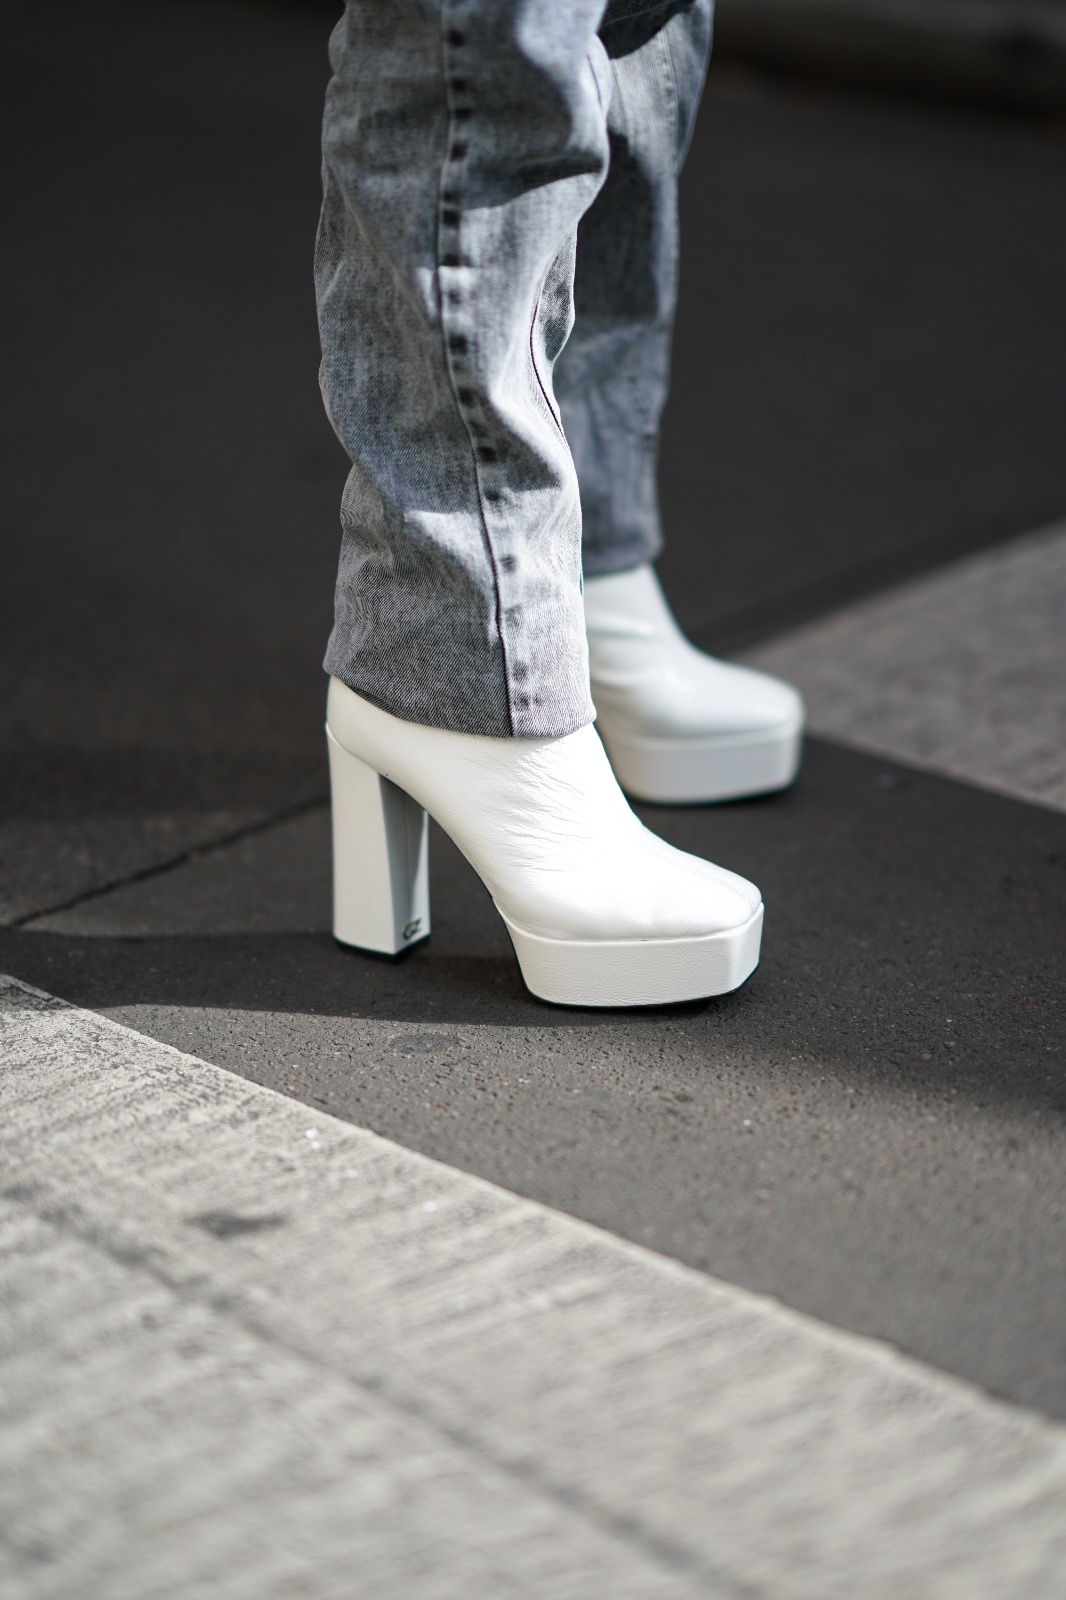 Best Fall Winter 2020 shoes and boots trends: western boots, combat boots, loose boots, animal print shoes, dad sneakers. Giuseppe Zanotti Platform Boots White